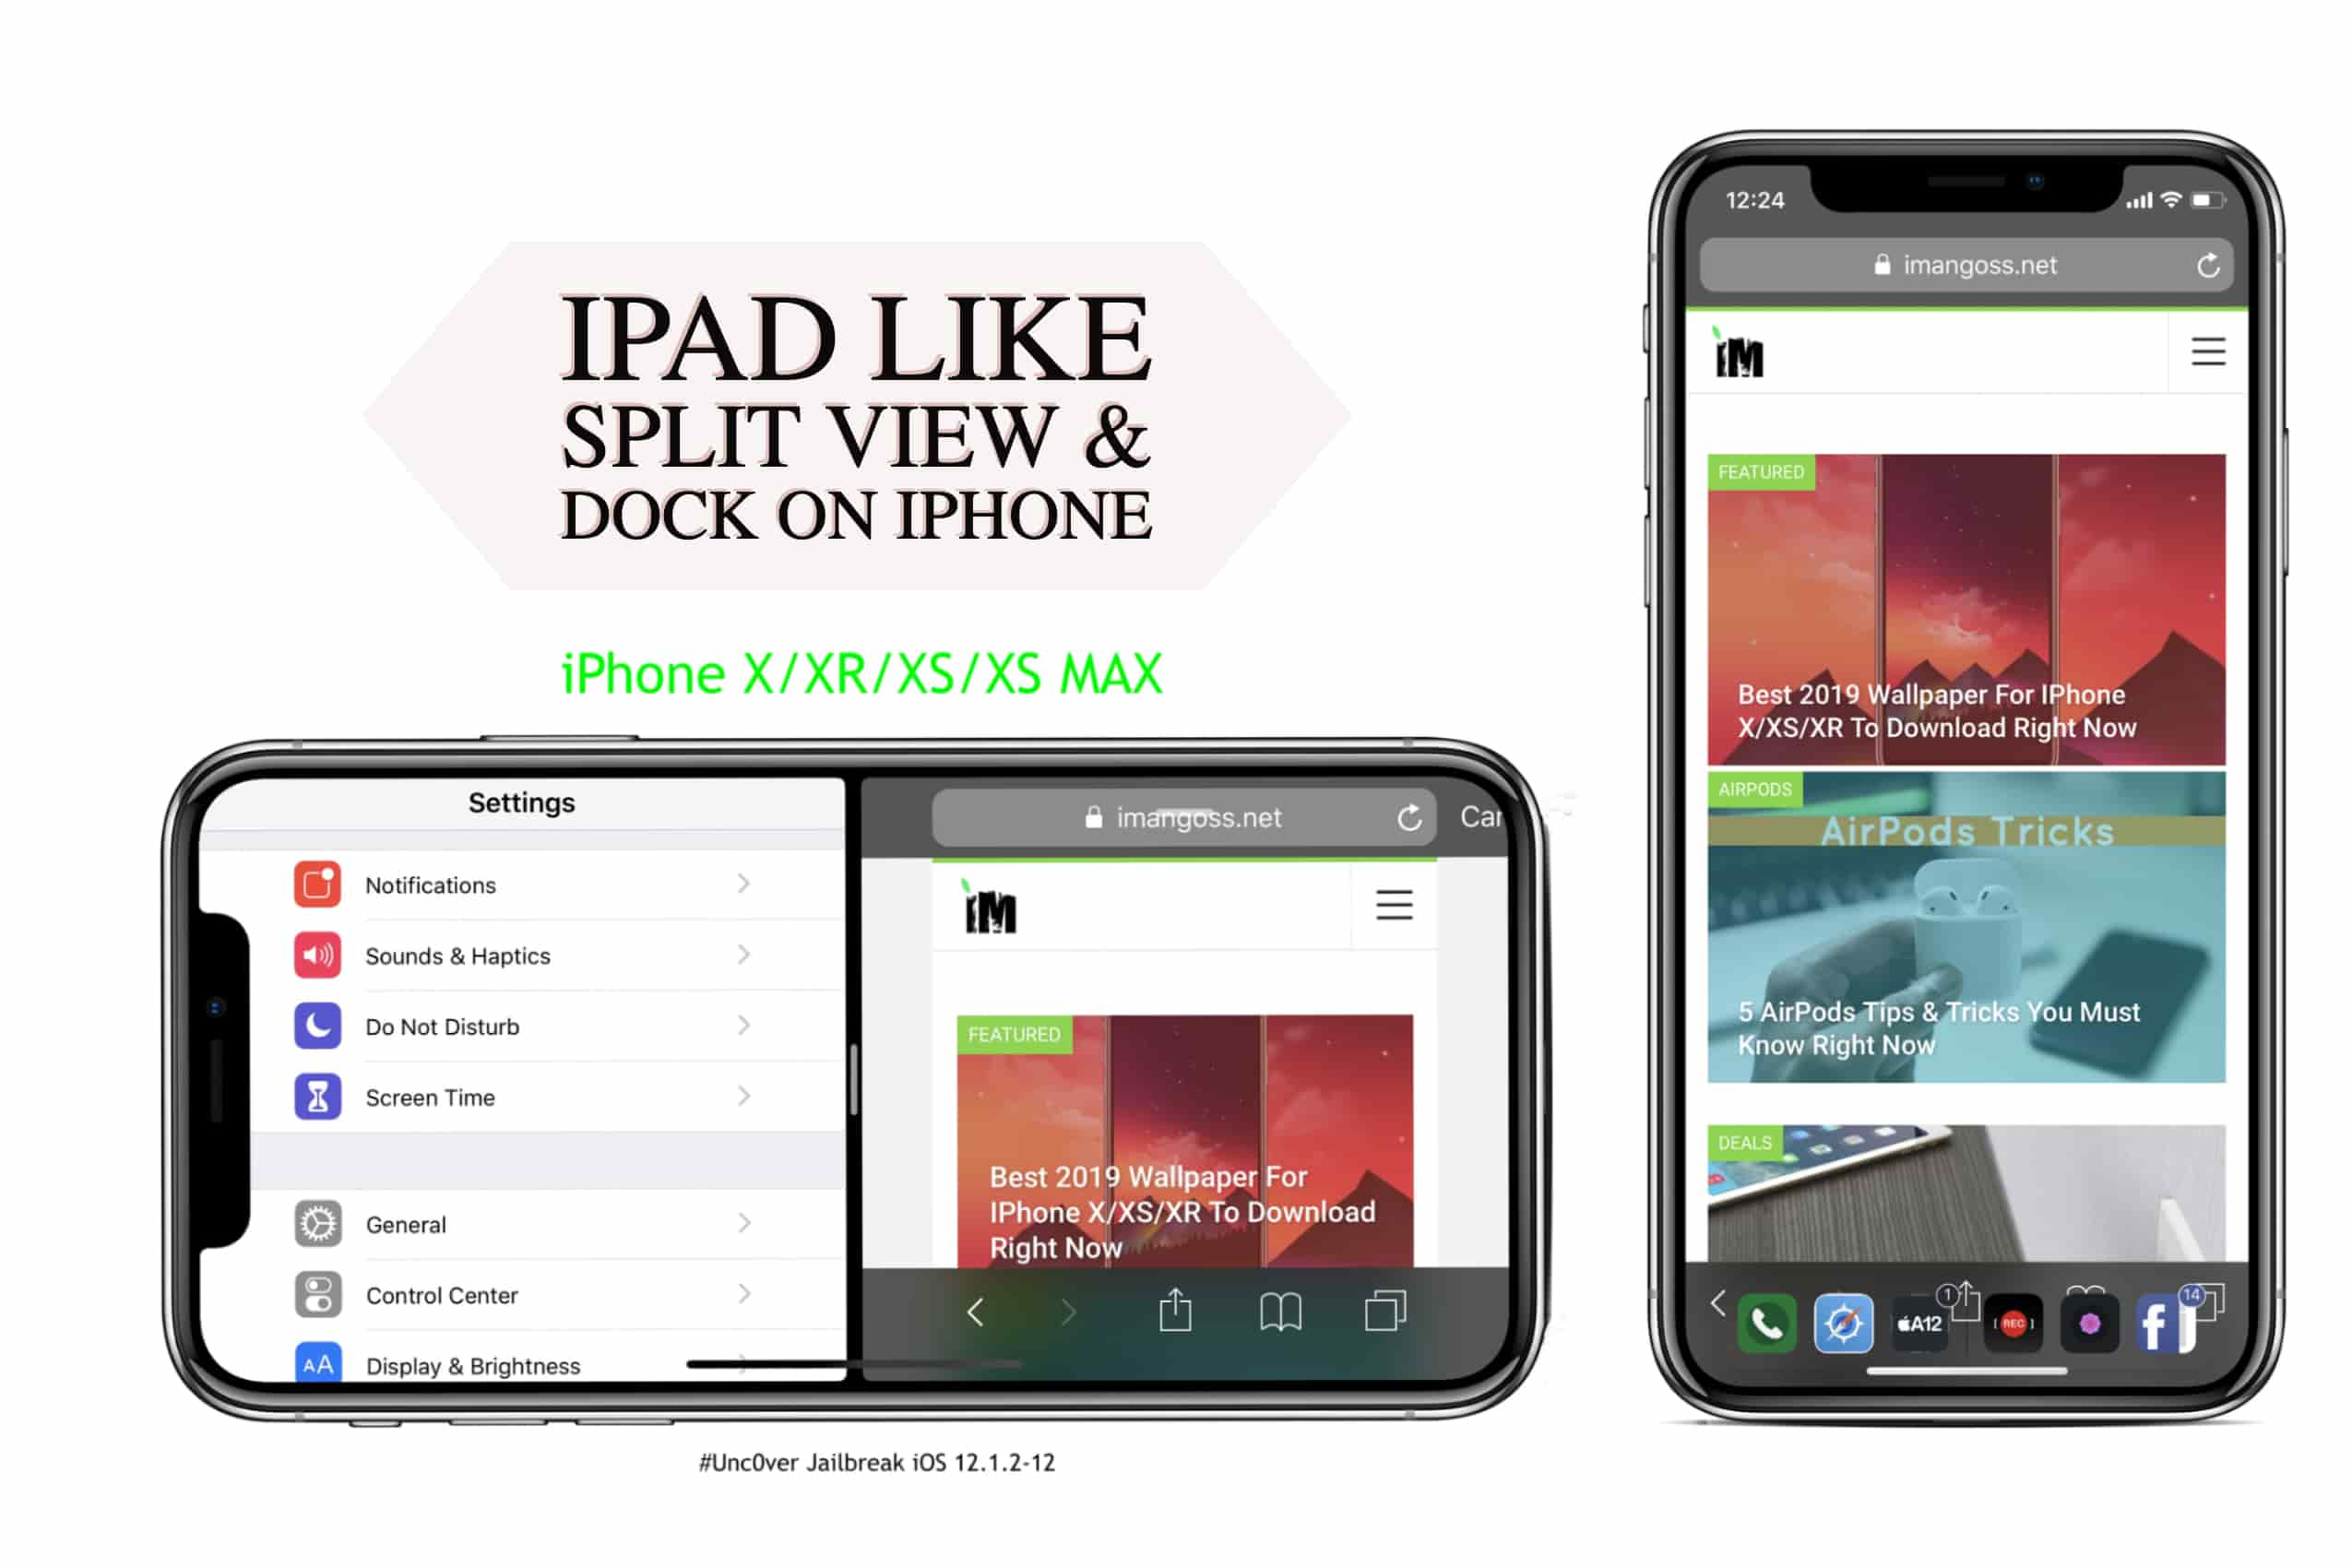 how-to-get-ipad-like-split-view-dock-on-iphone-x-xs-xr-xsmax